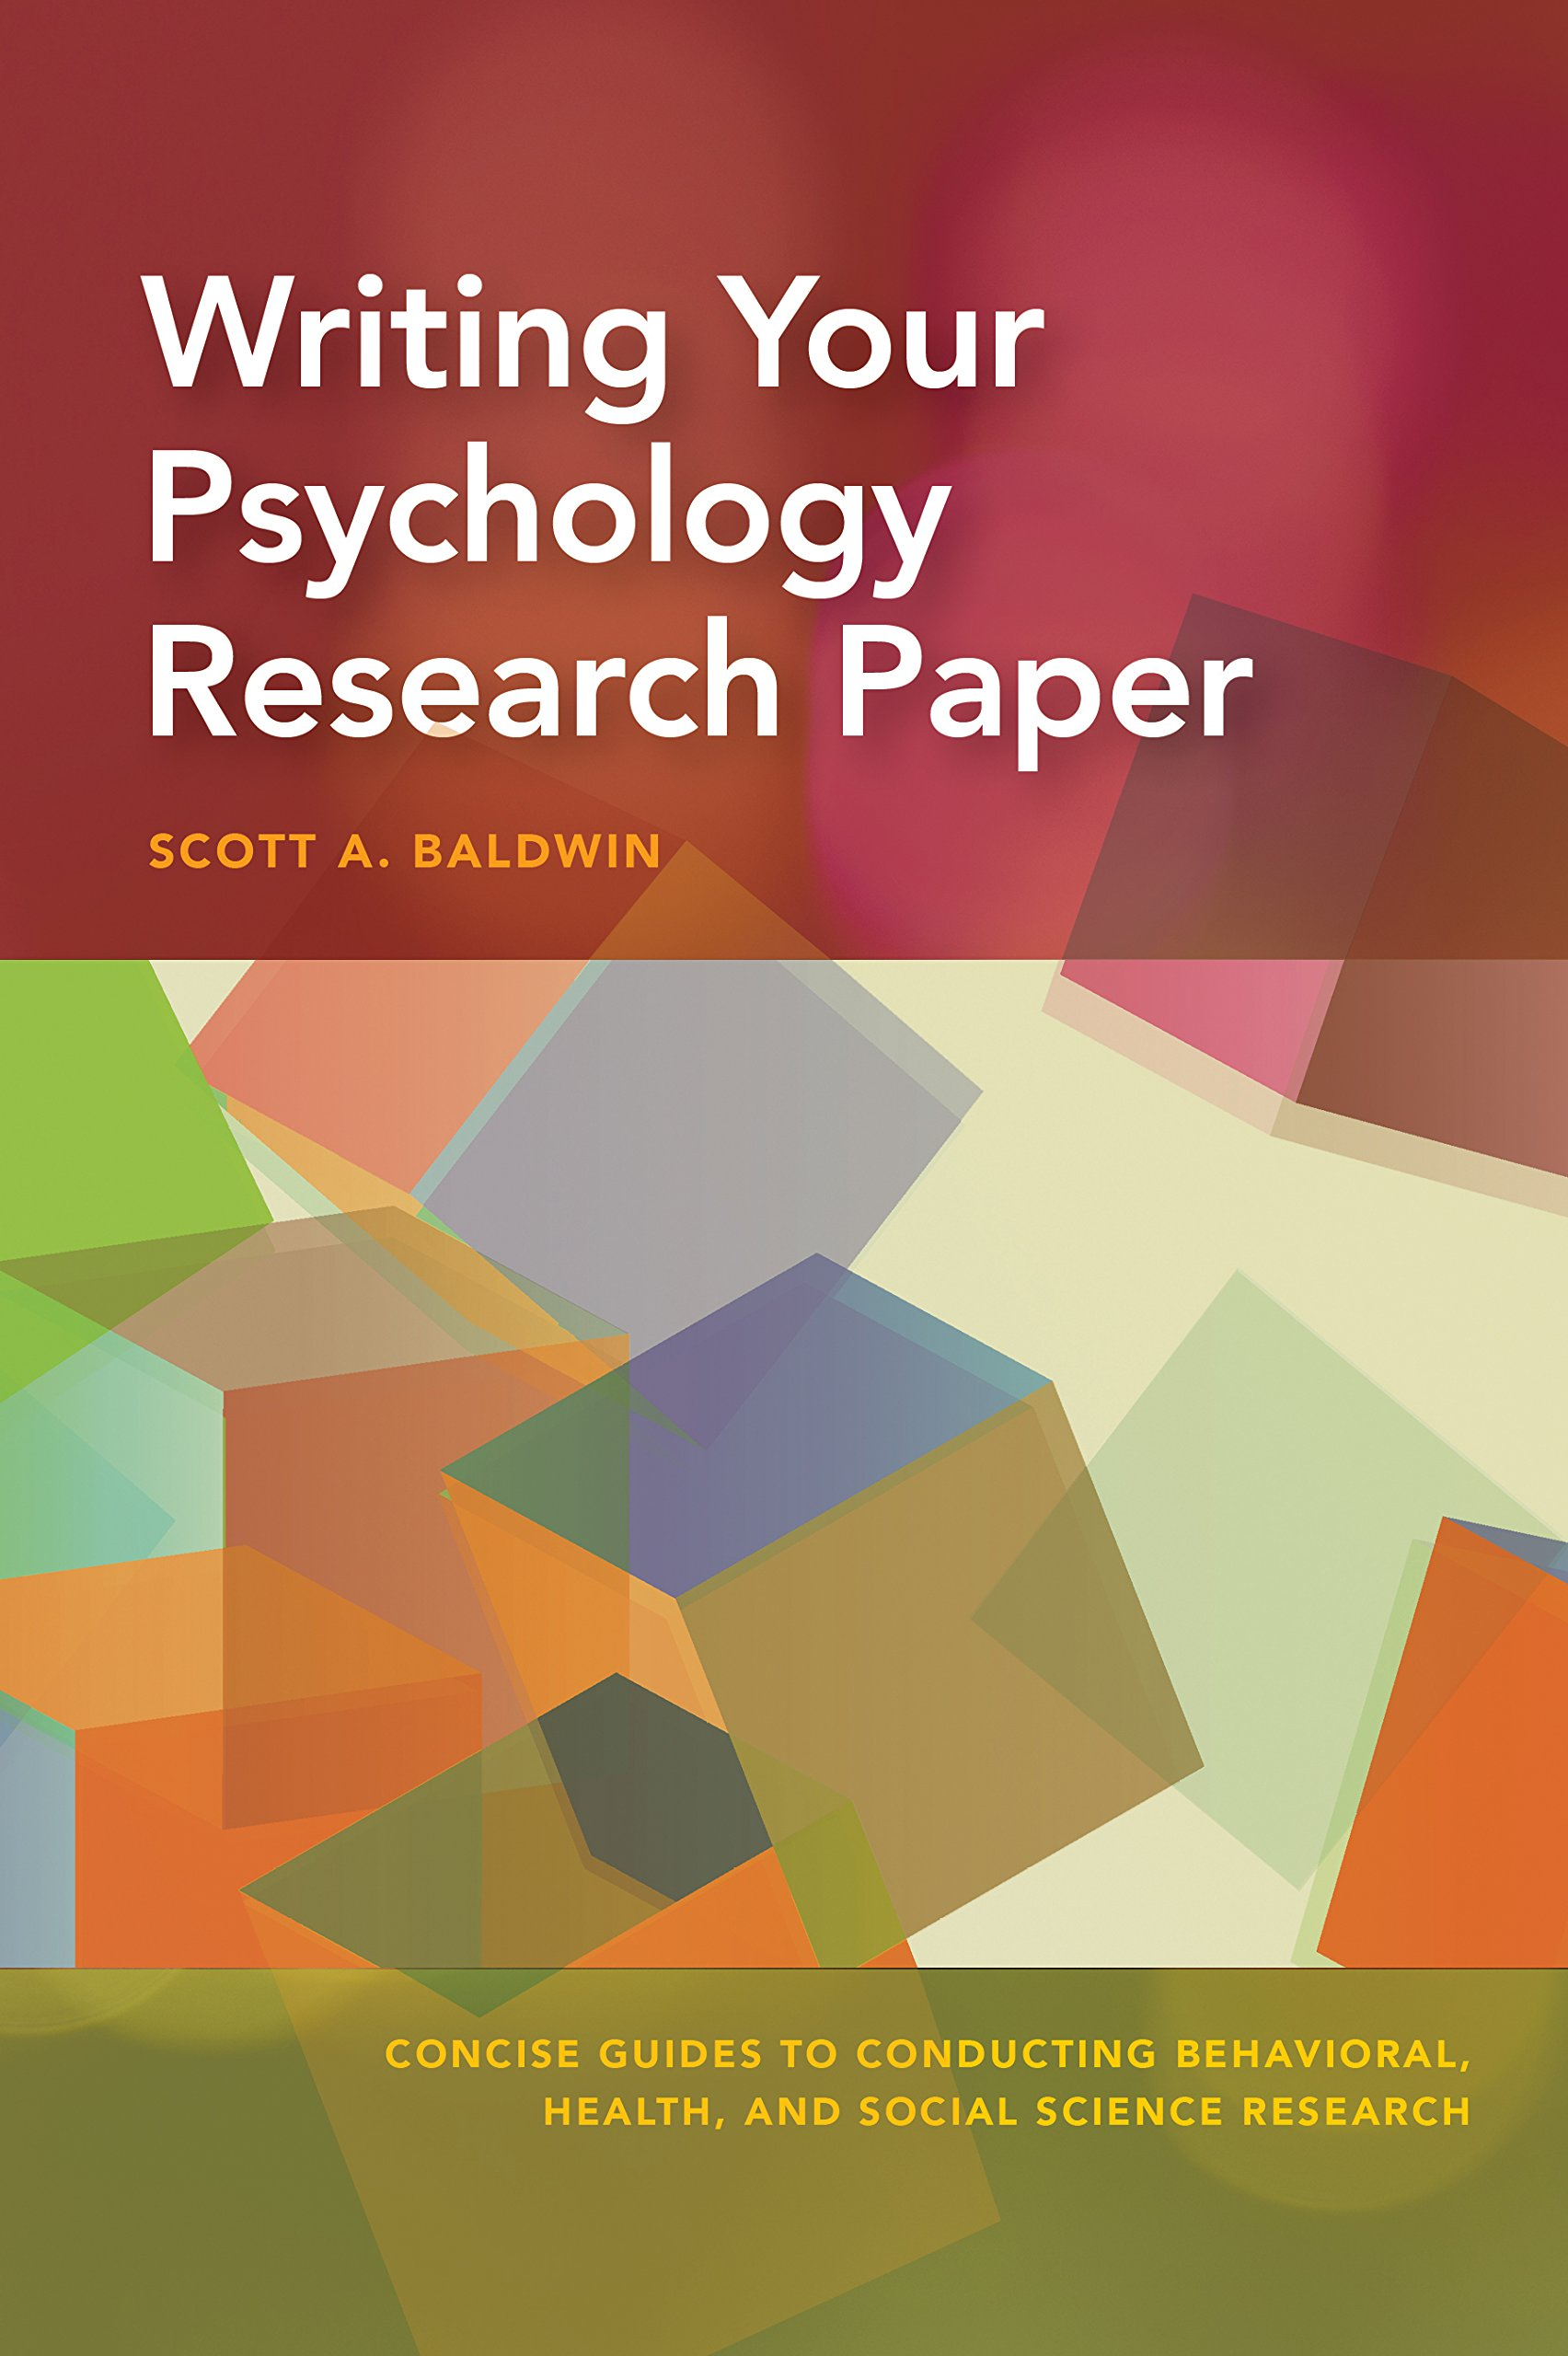 010 Psychology Research Paper On Anxiety Marvelous Topics Full